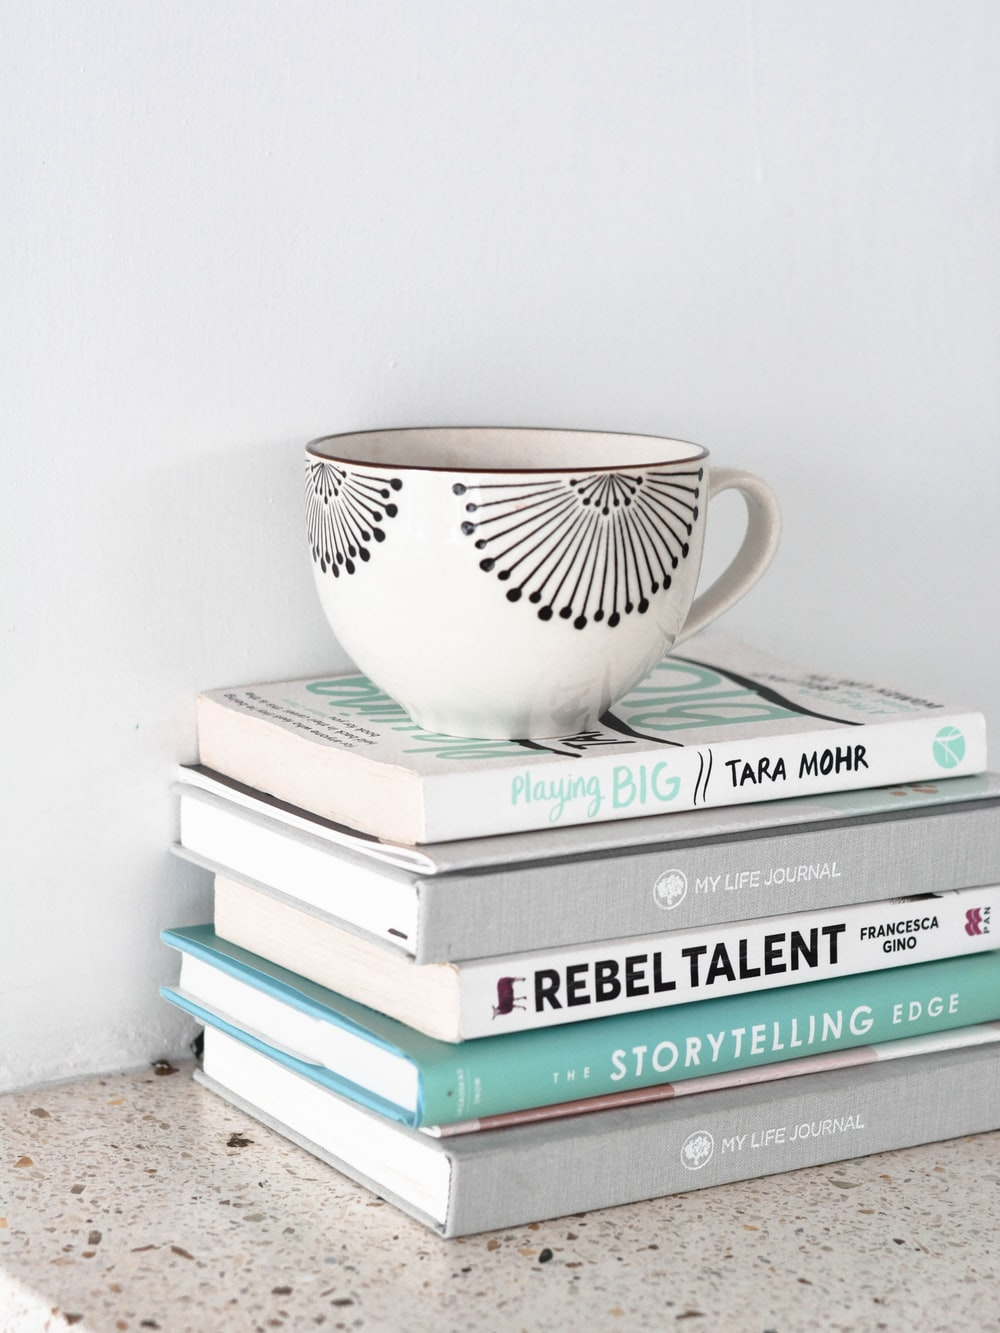 a teacup on top of stacked books